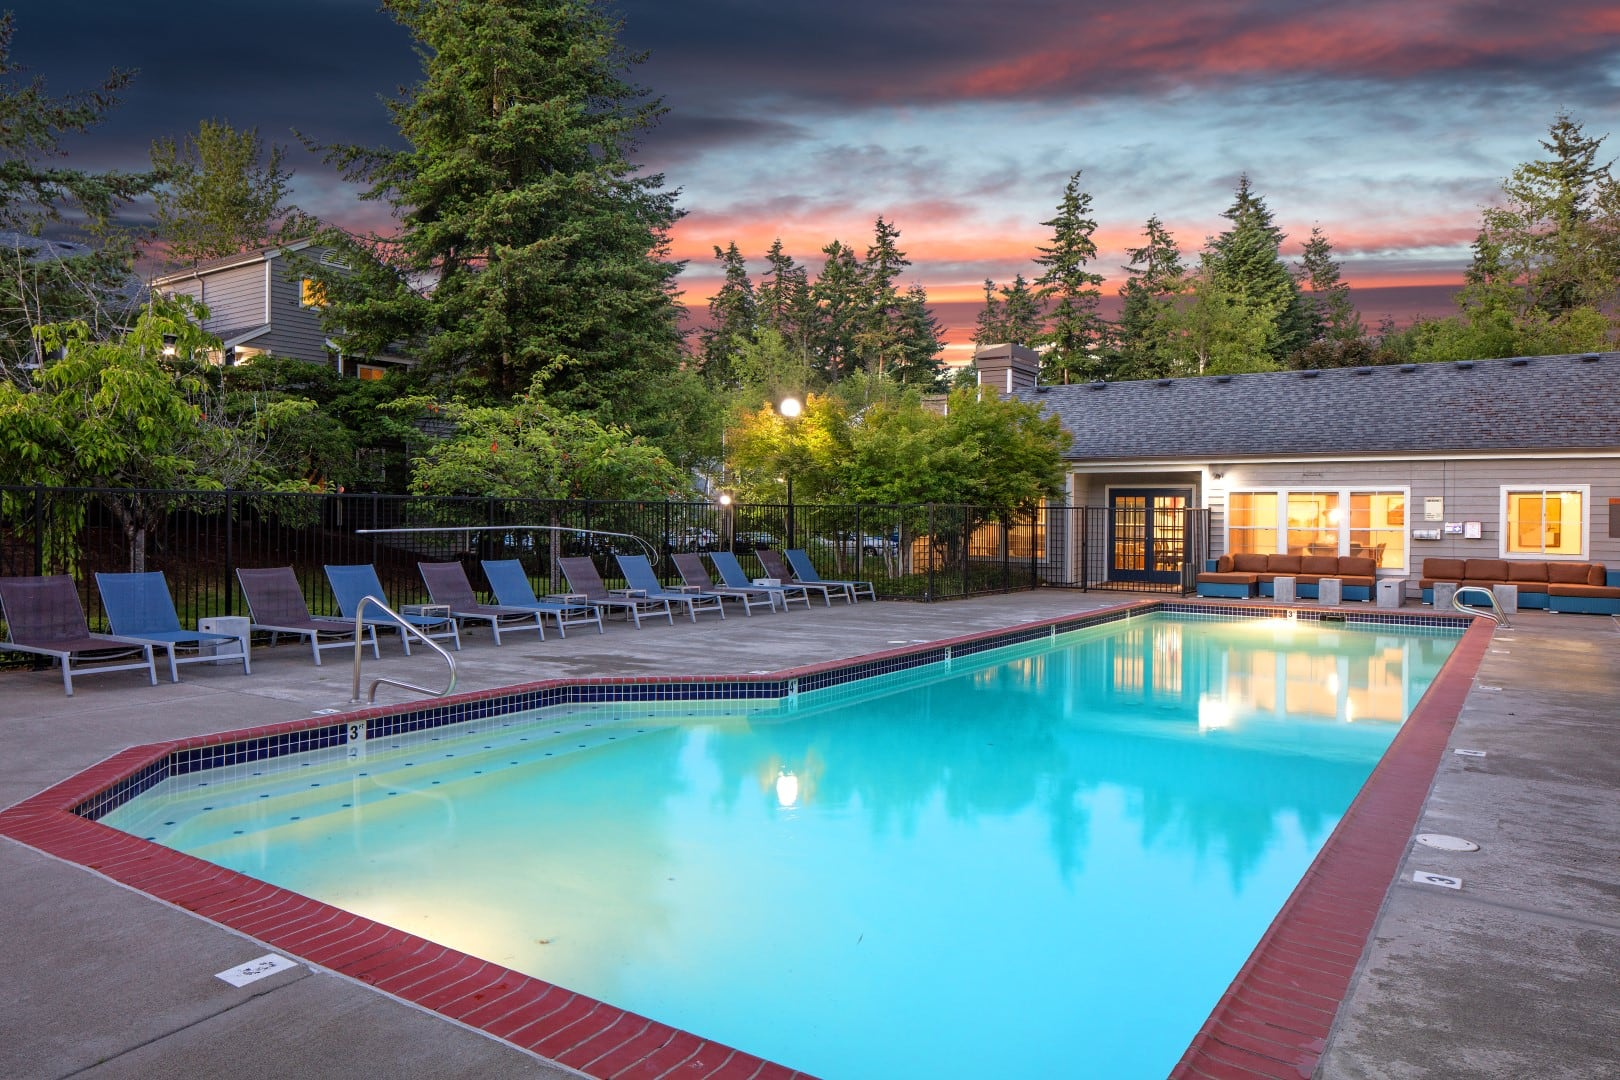 Pool and spa at The Carriages at Fairwood Downs in Renton, WA